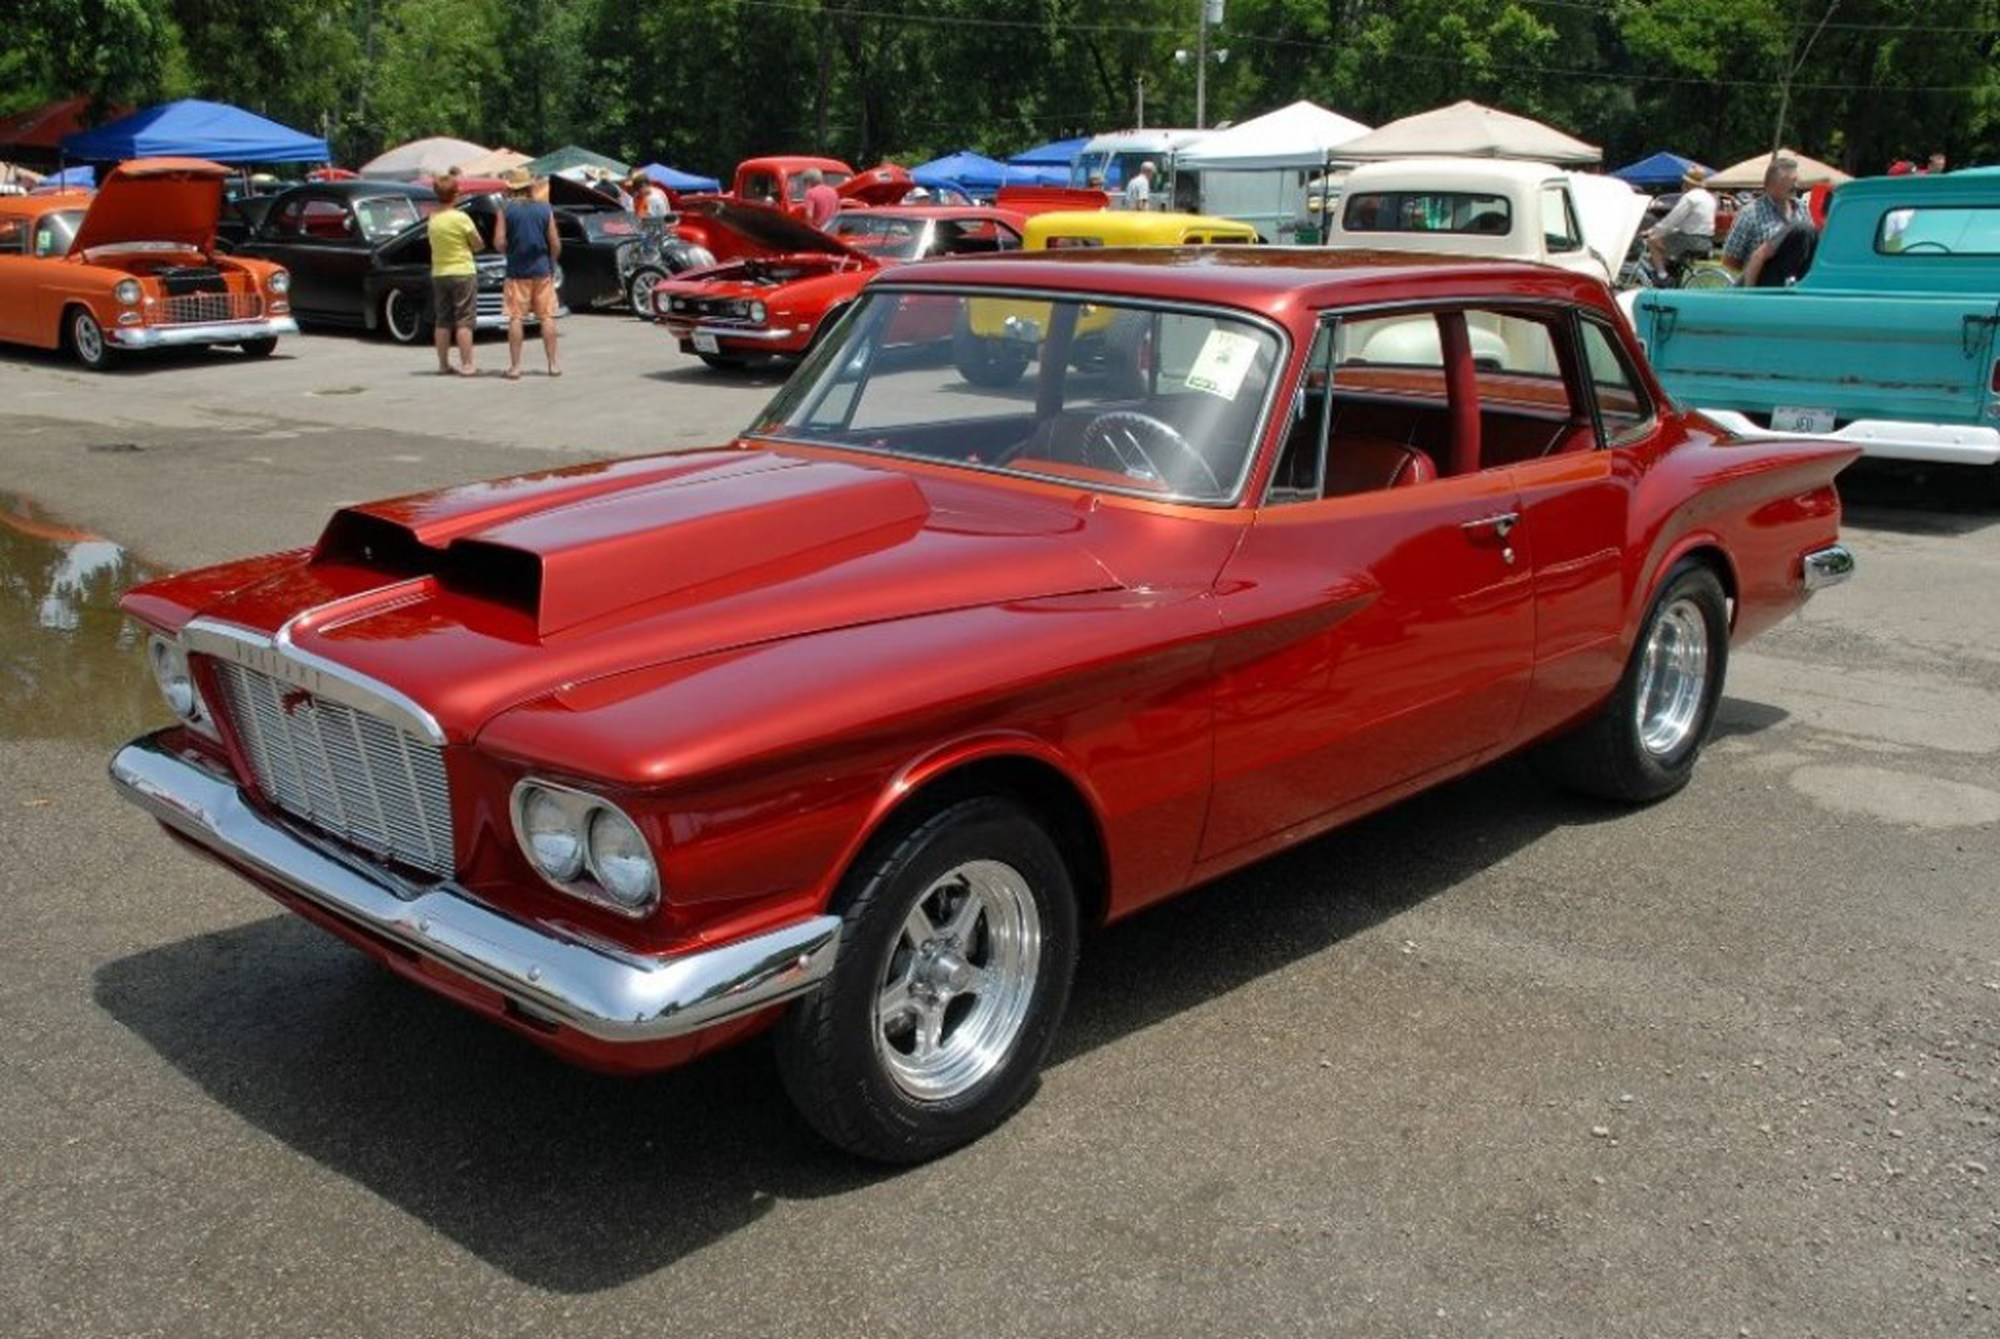 hight resolution of the lowes created an unlikely muscle car in the form of this ferocious little valiant the pro stock hood scoop signifies something potent underneath